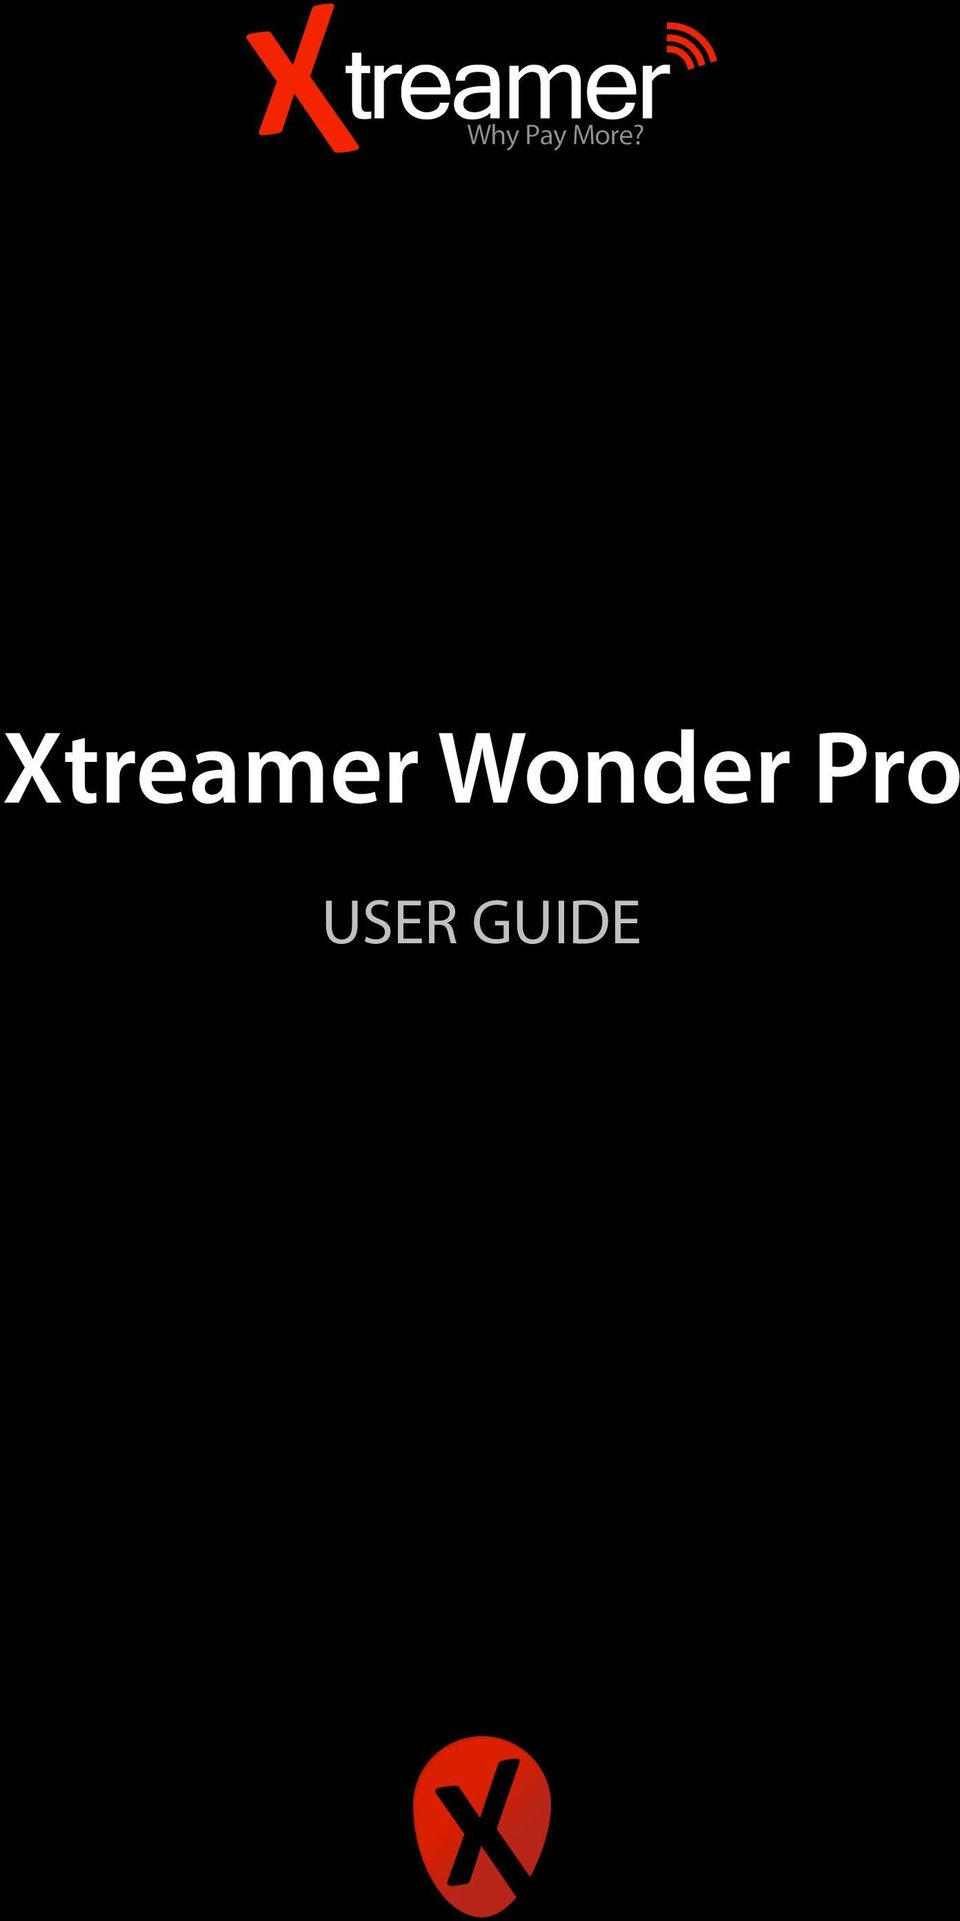 Xtreamer Wonder Pro User Guide Pdf Express 4k Smart Tv Ios Android Hdr Media Player 2 When Is Getting Smarter